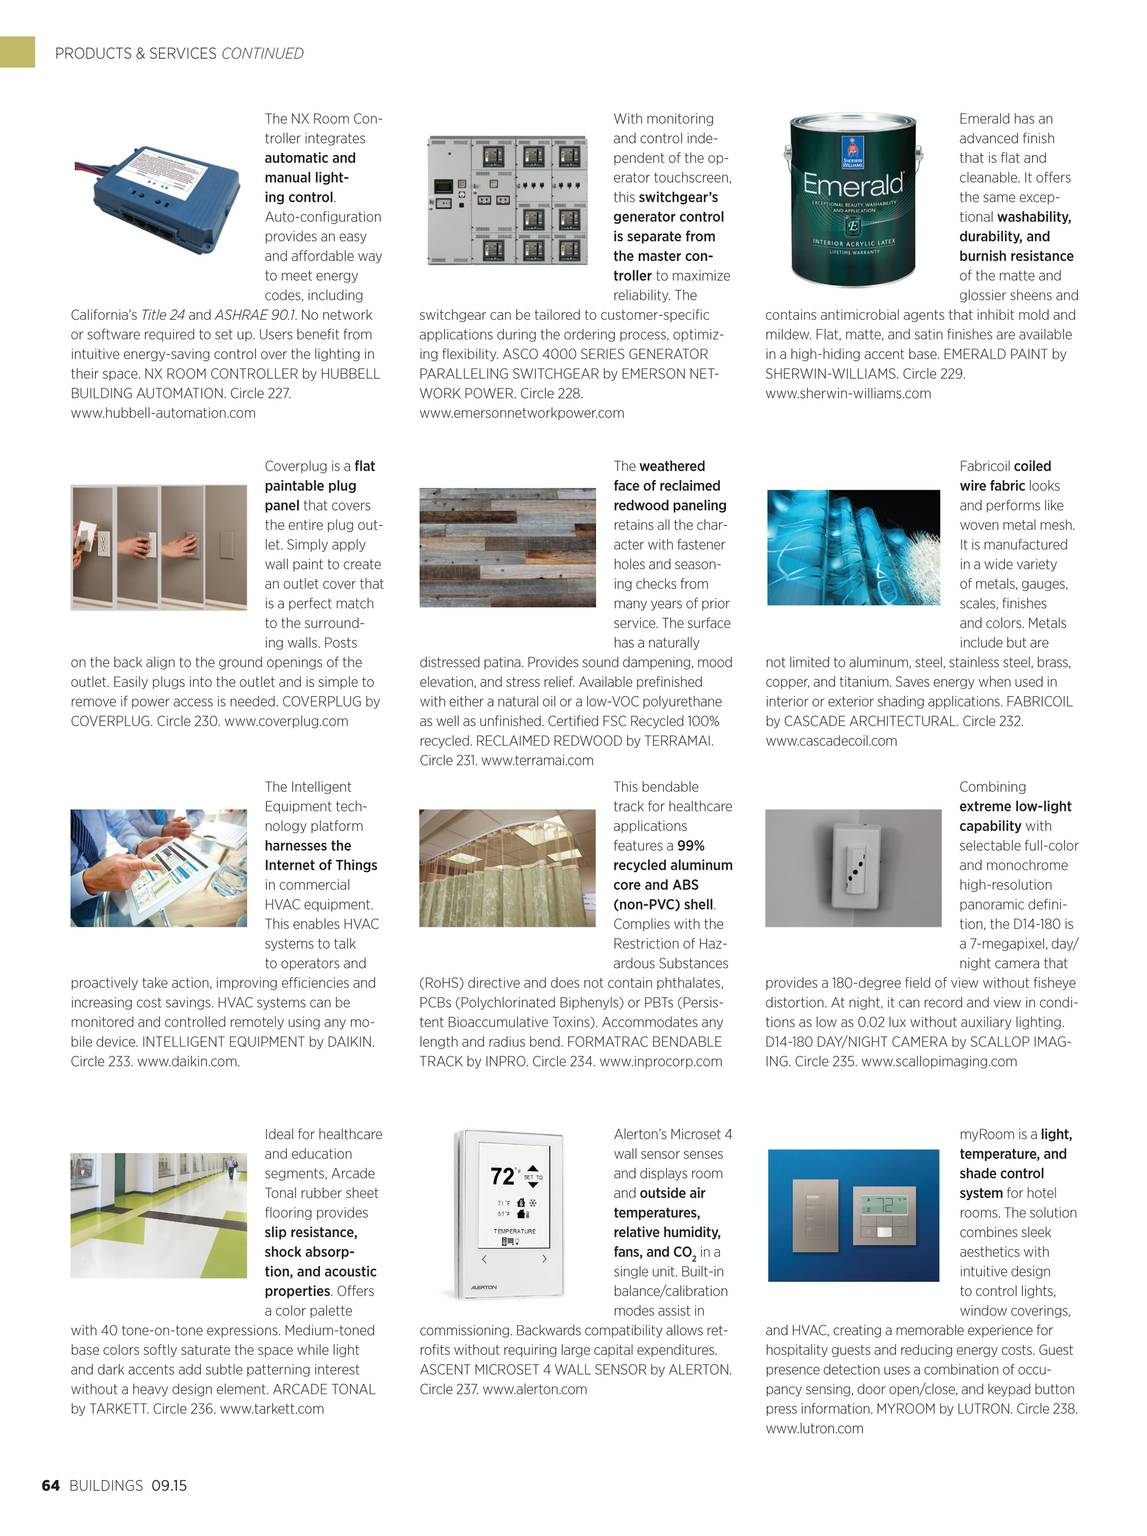 Buildings Magazine - September 2015 - page 64